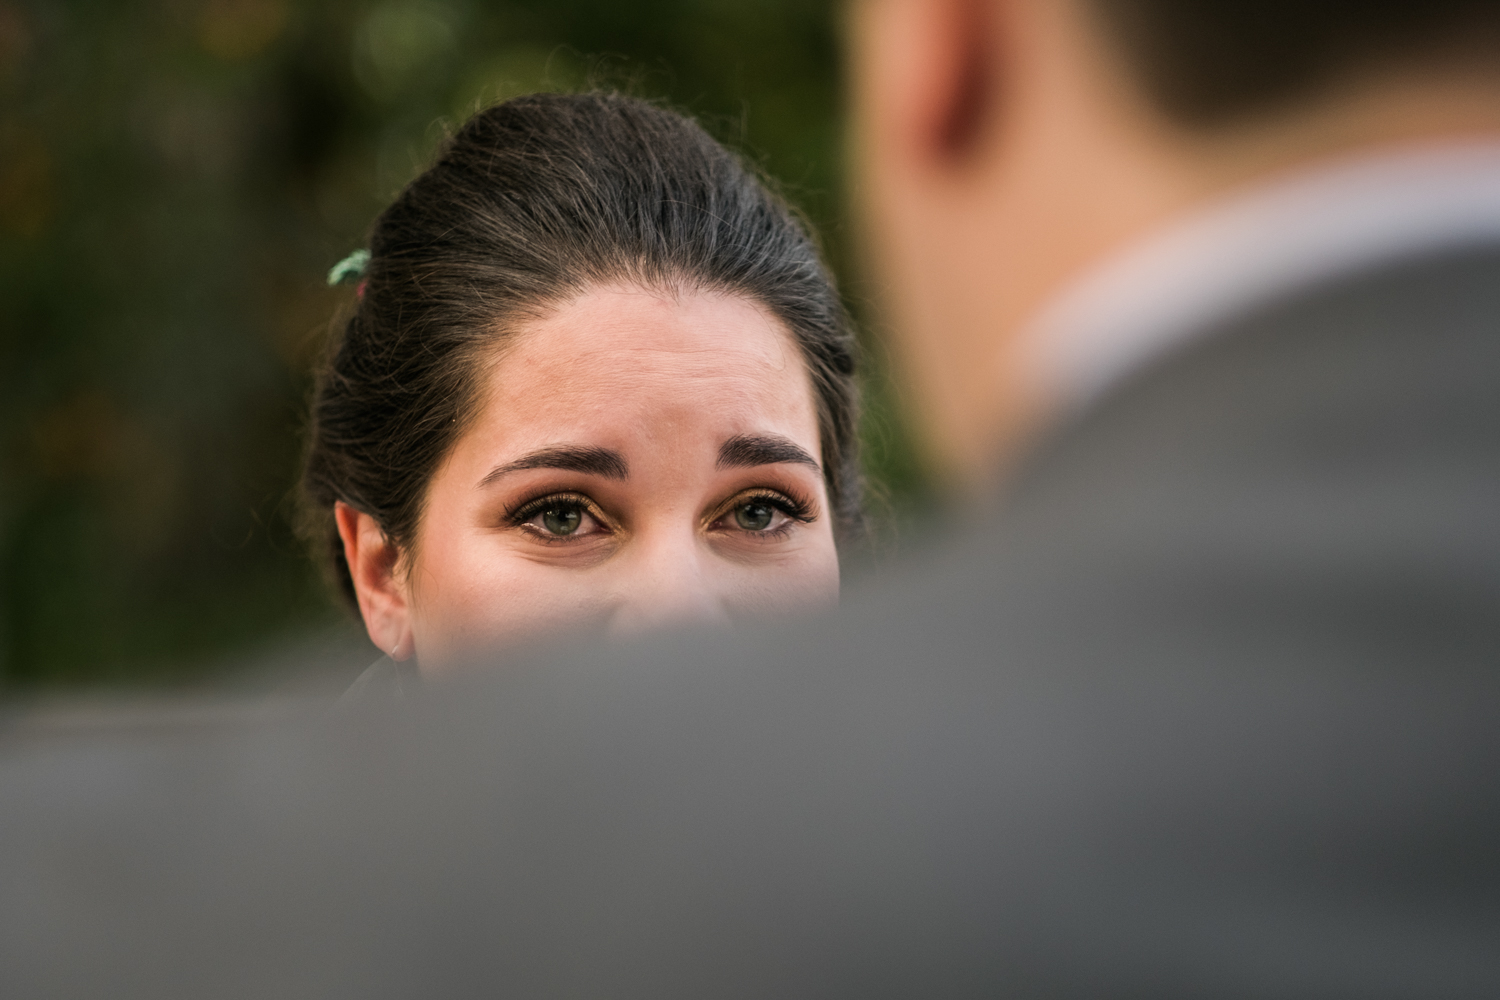 Honorable Mention 2 |Melissa & Patrick | Lake of Isles  Fuji XT2 | Leica Sumilux 50 f1.4  After their Catholic ceremony Melissa and Patrick arrived at the venue and took 10 minutes alone to read each other personal vows that they had written. I peaked over Patrick's shoulder and caught this emotional moment. An easy pick for 2017.